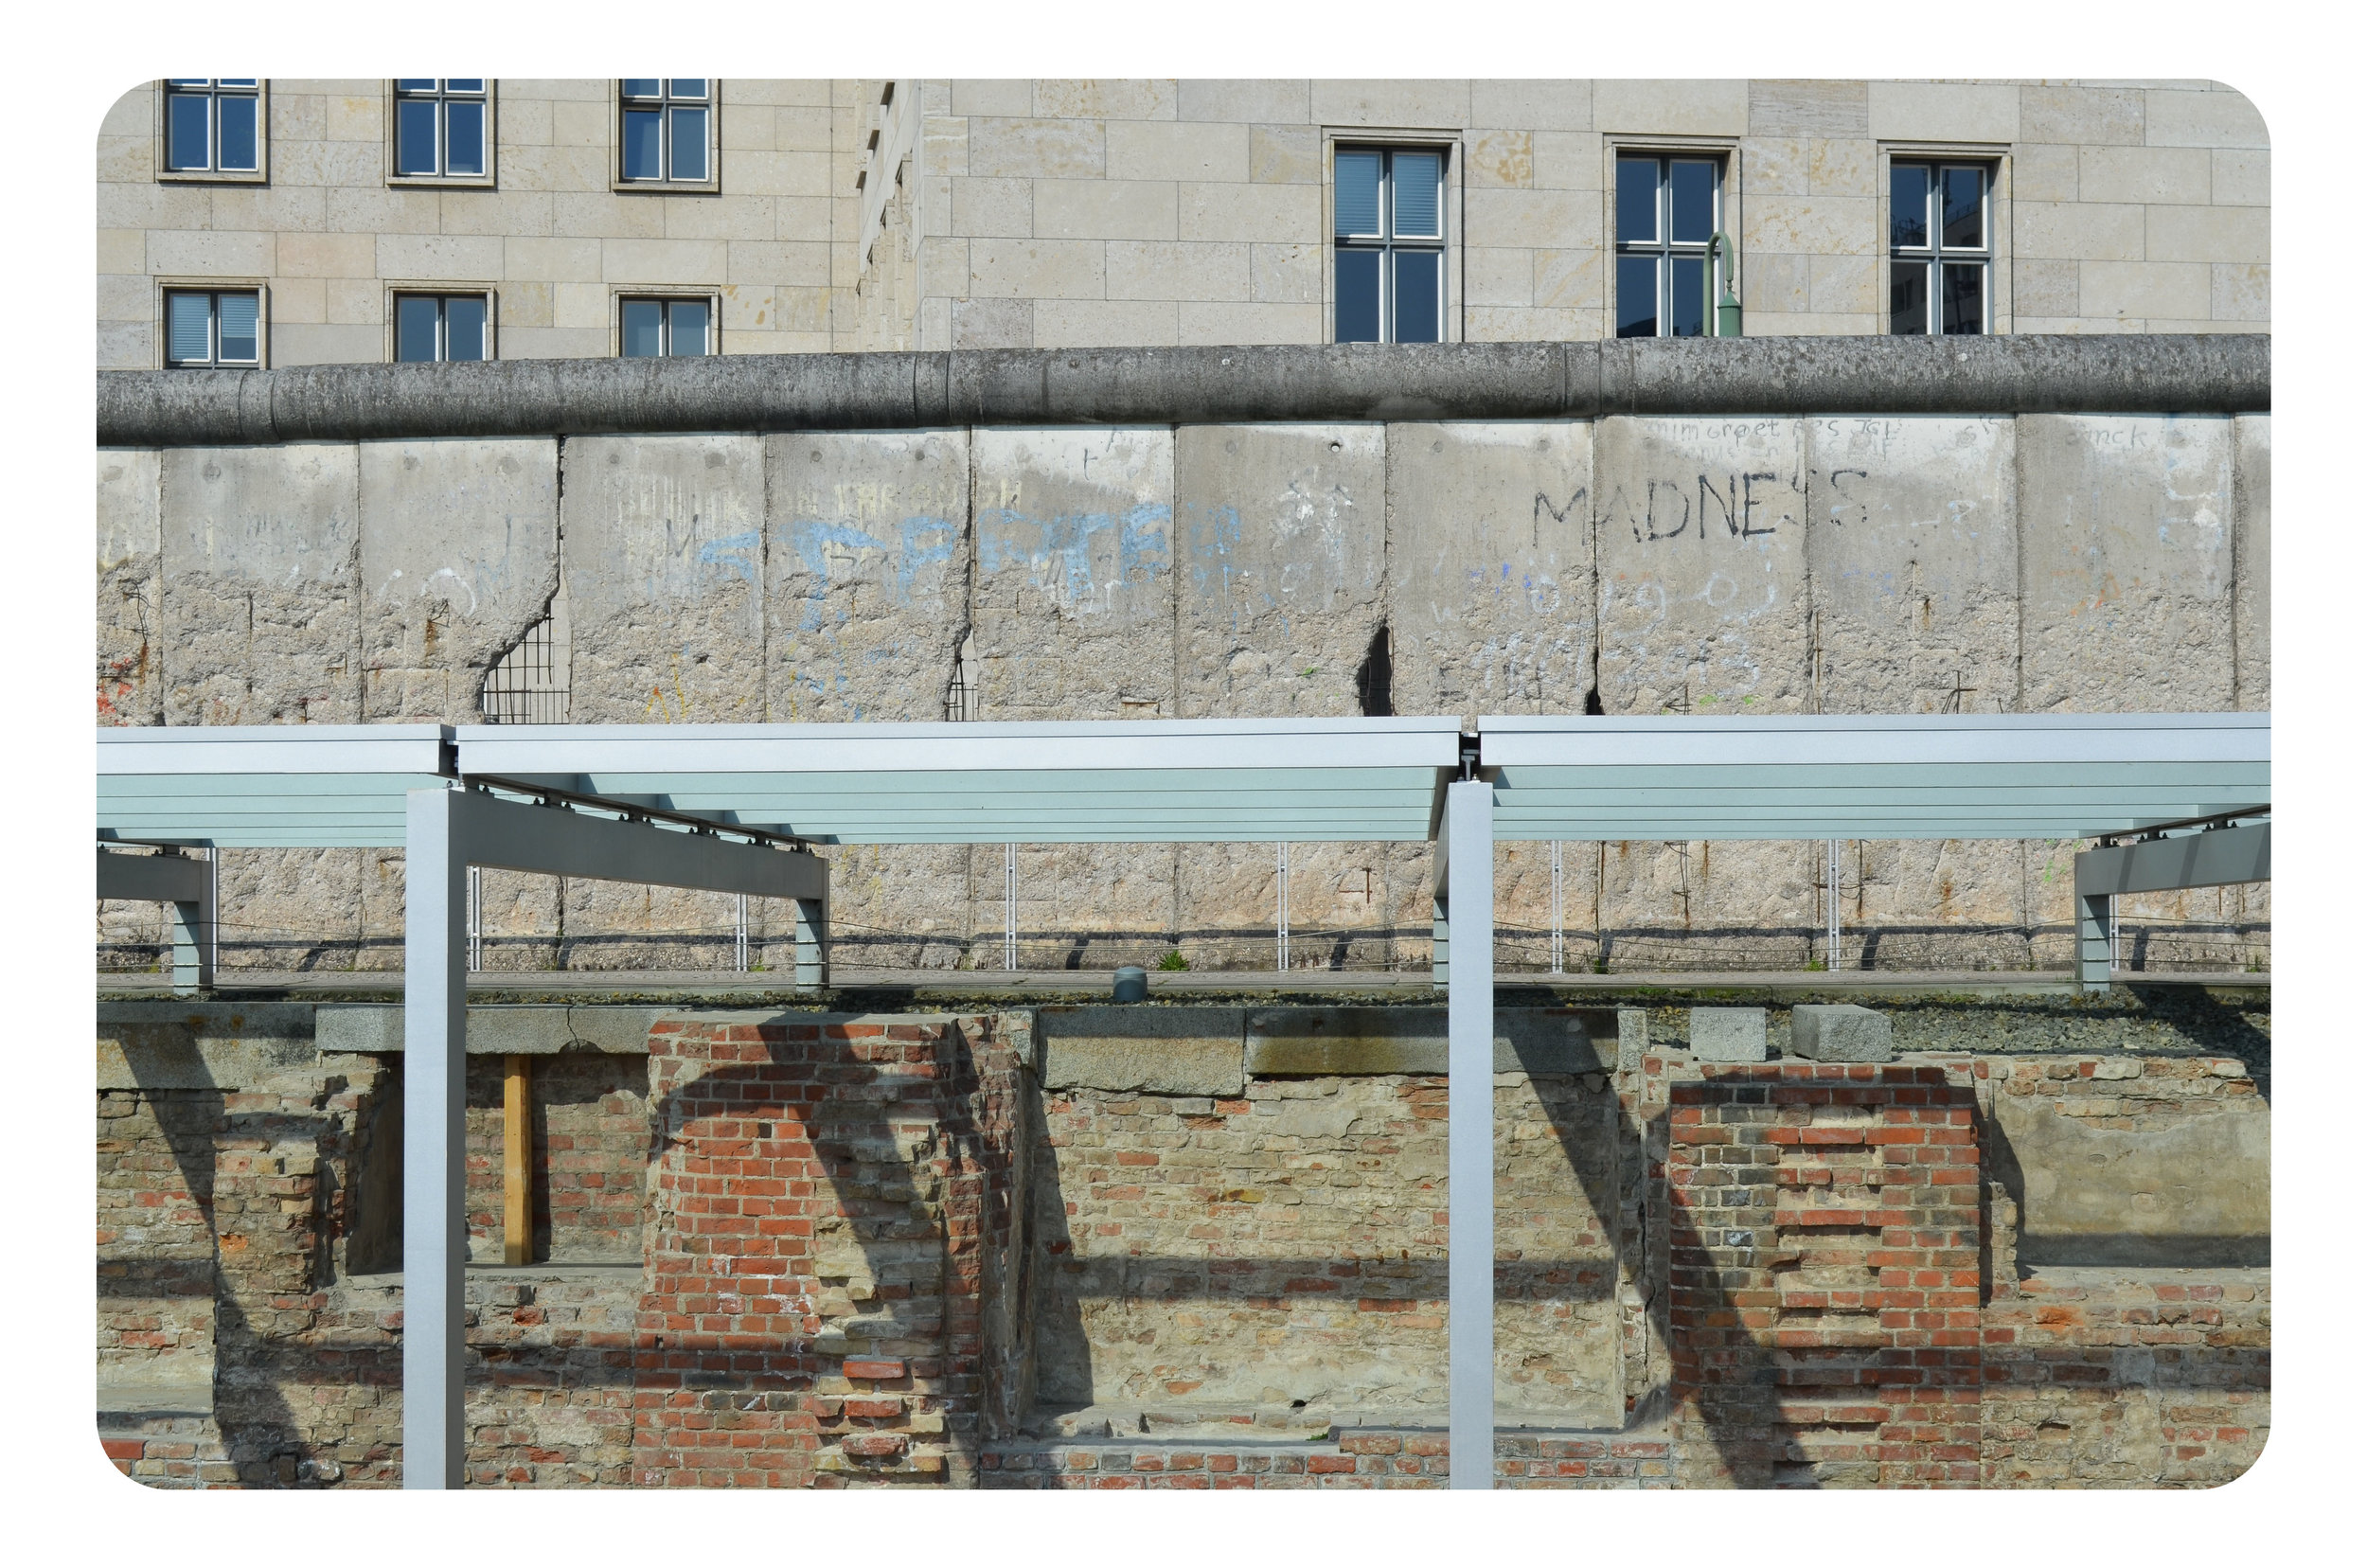 The remainders of the Berlin Wall